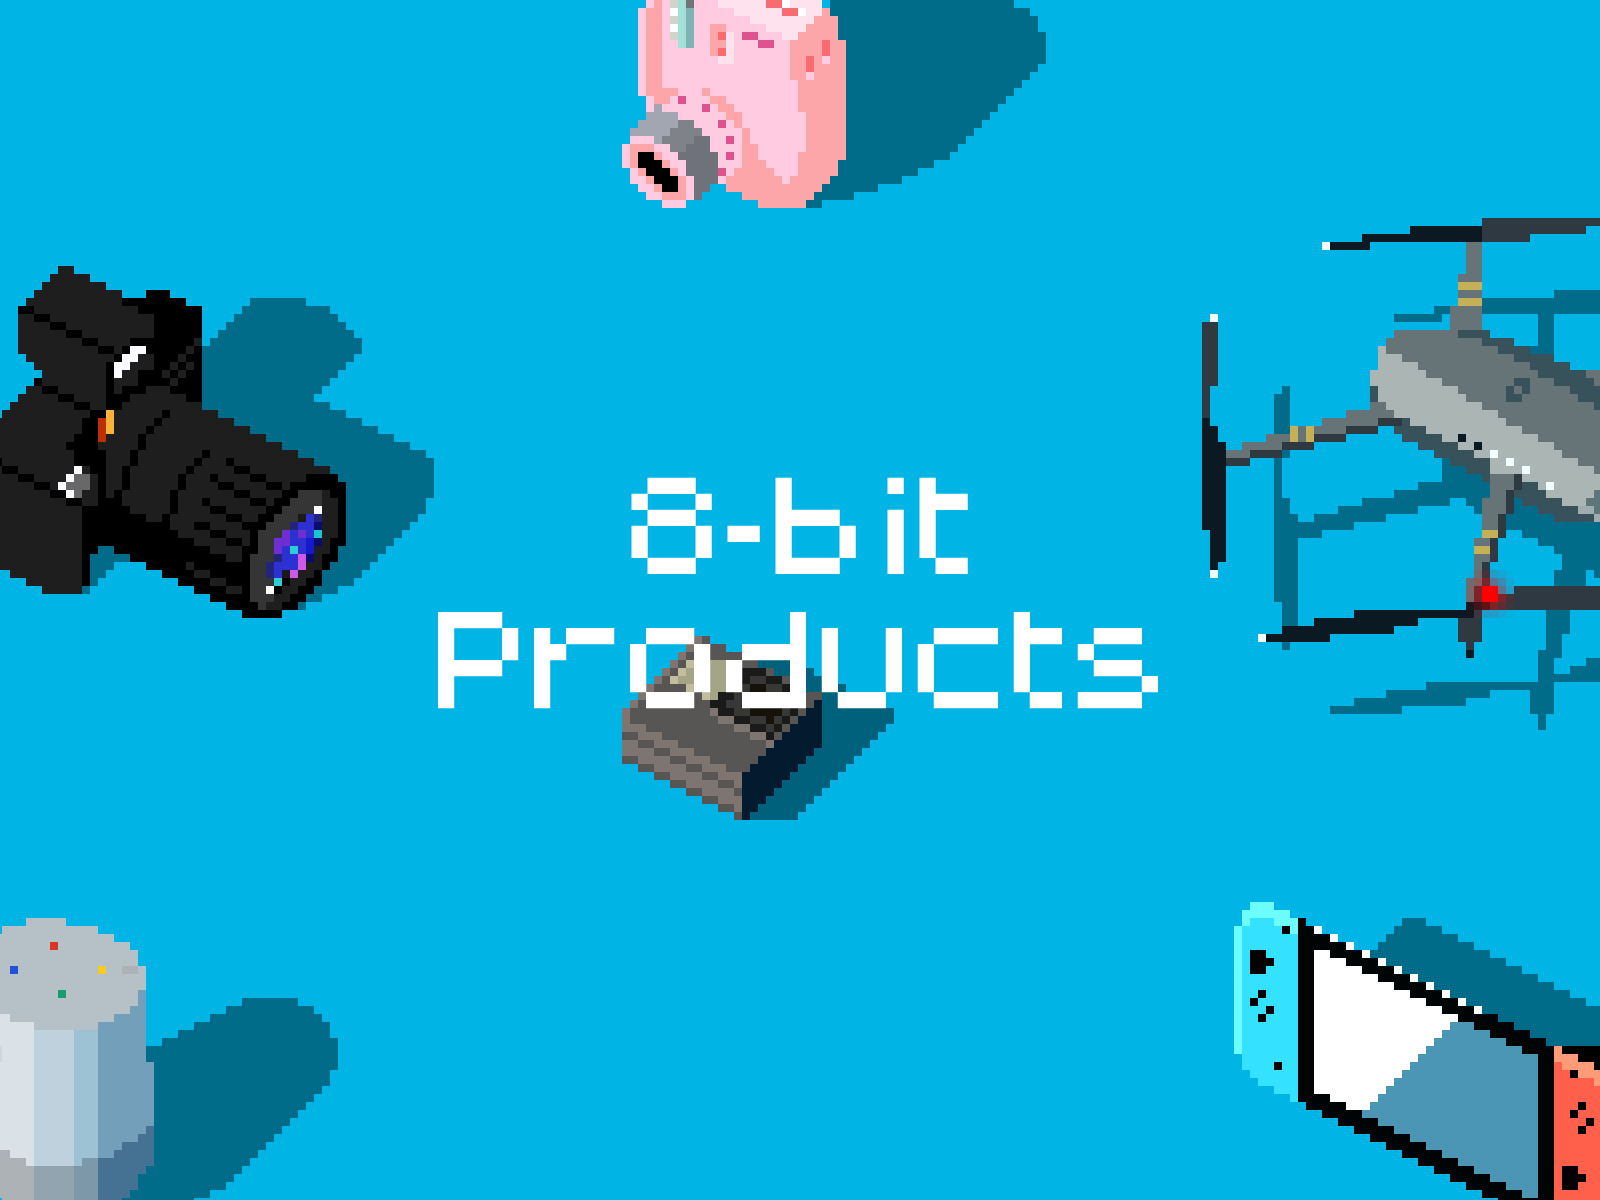 8-bit illustrations of popular tech products.